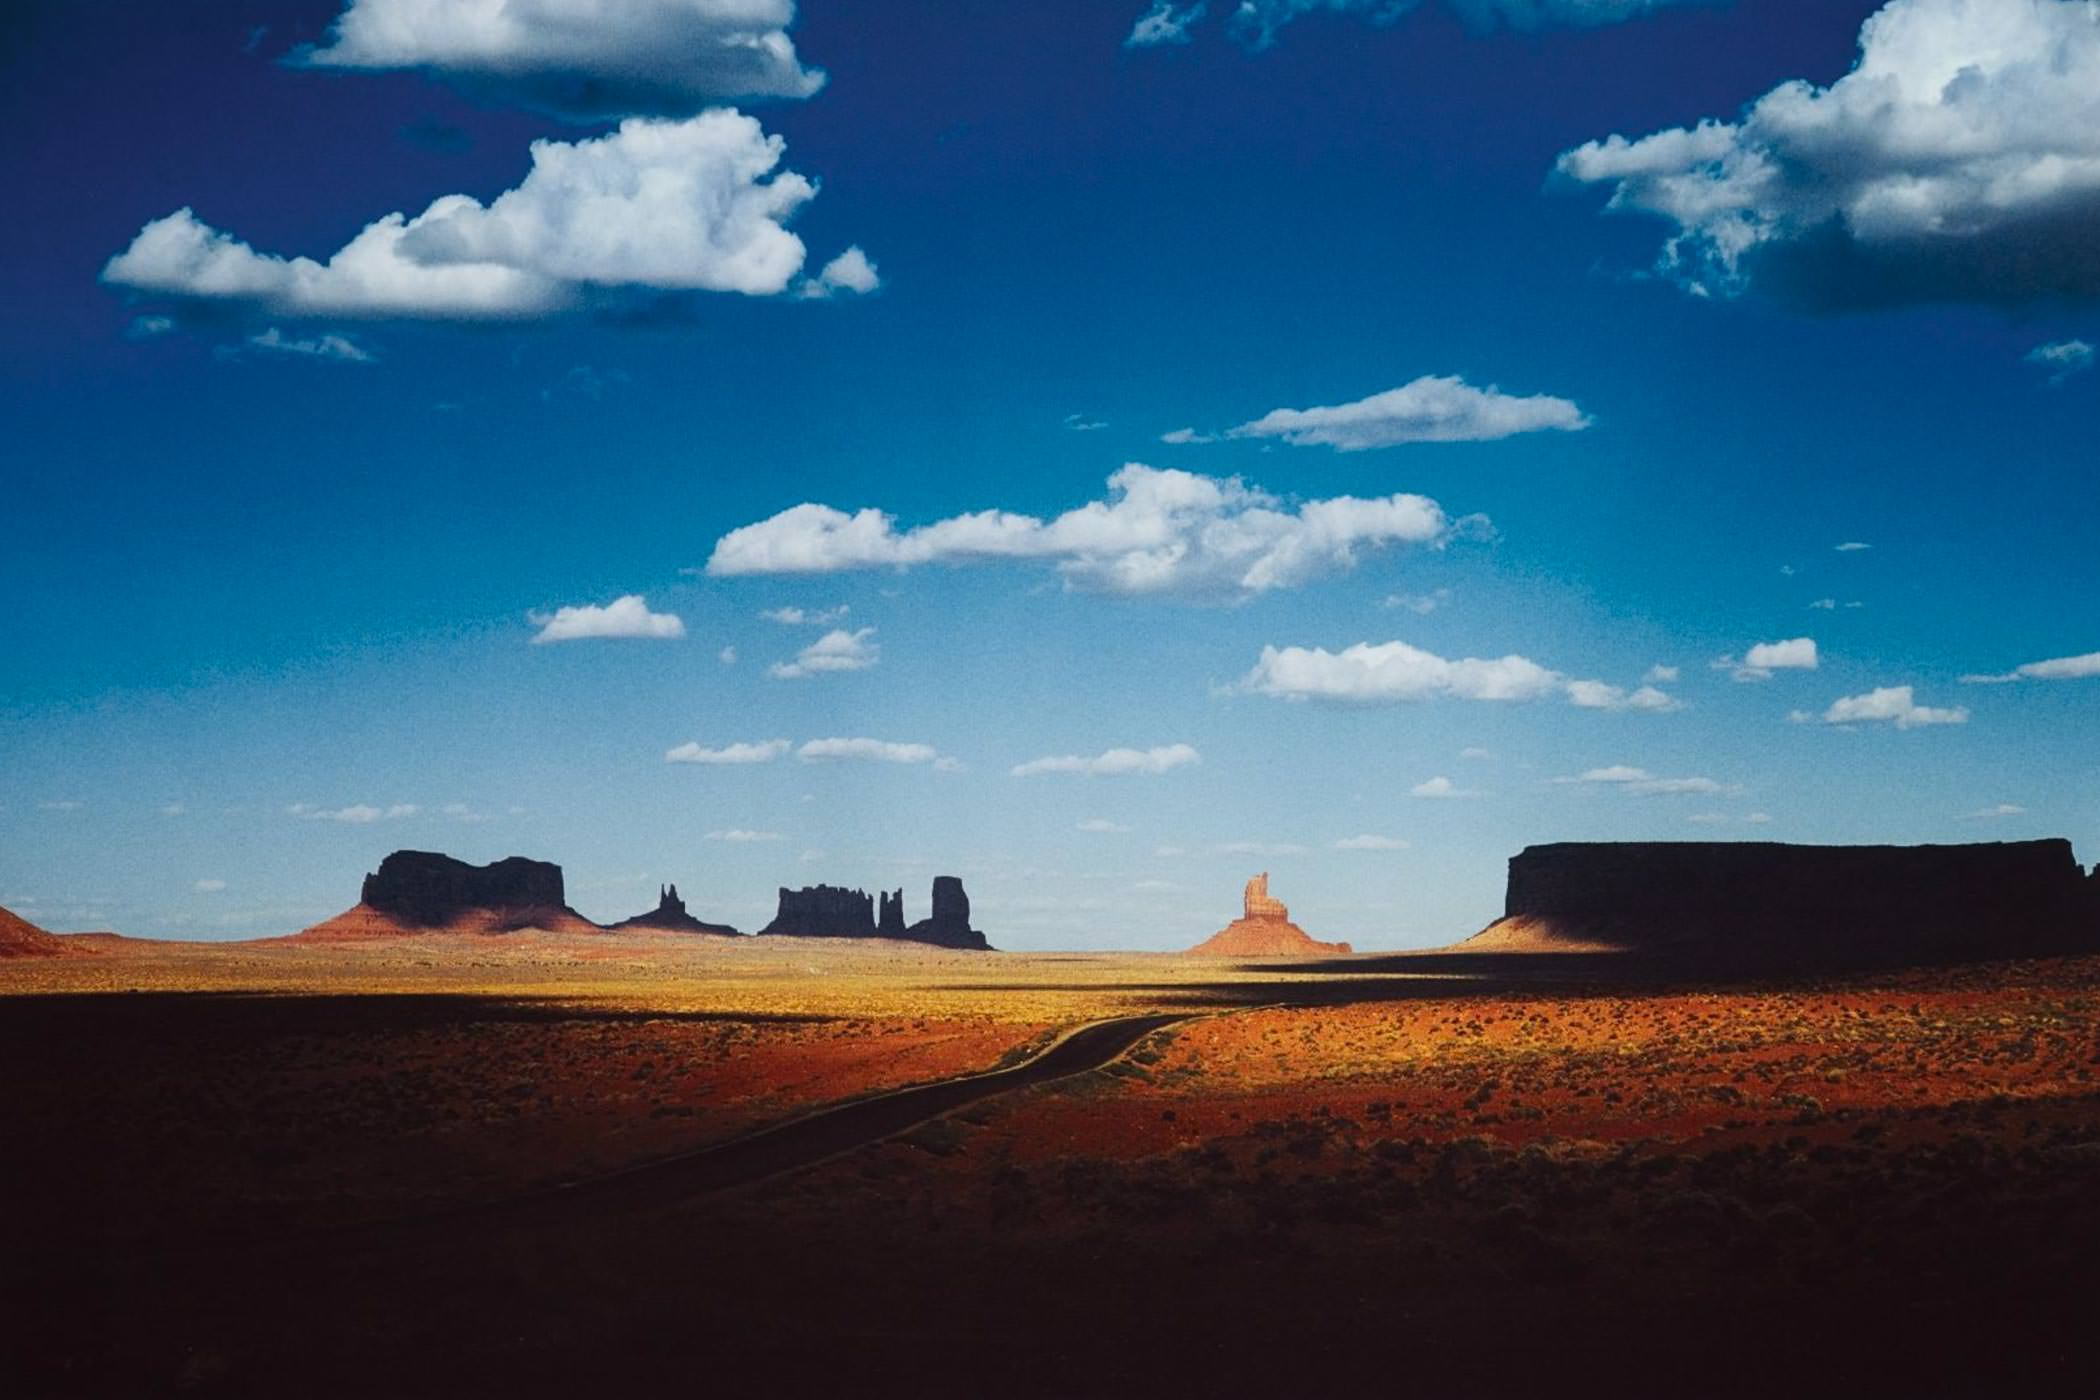 Ernst Haas Photographie, Navajo Nation, Arizona, USA, 1970